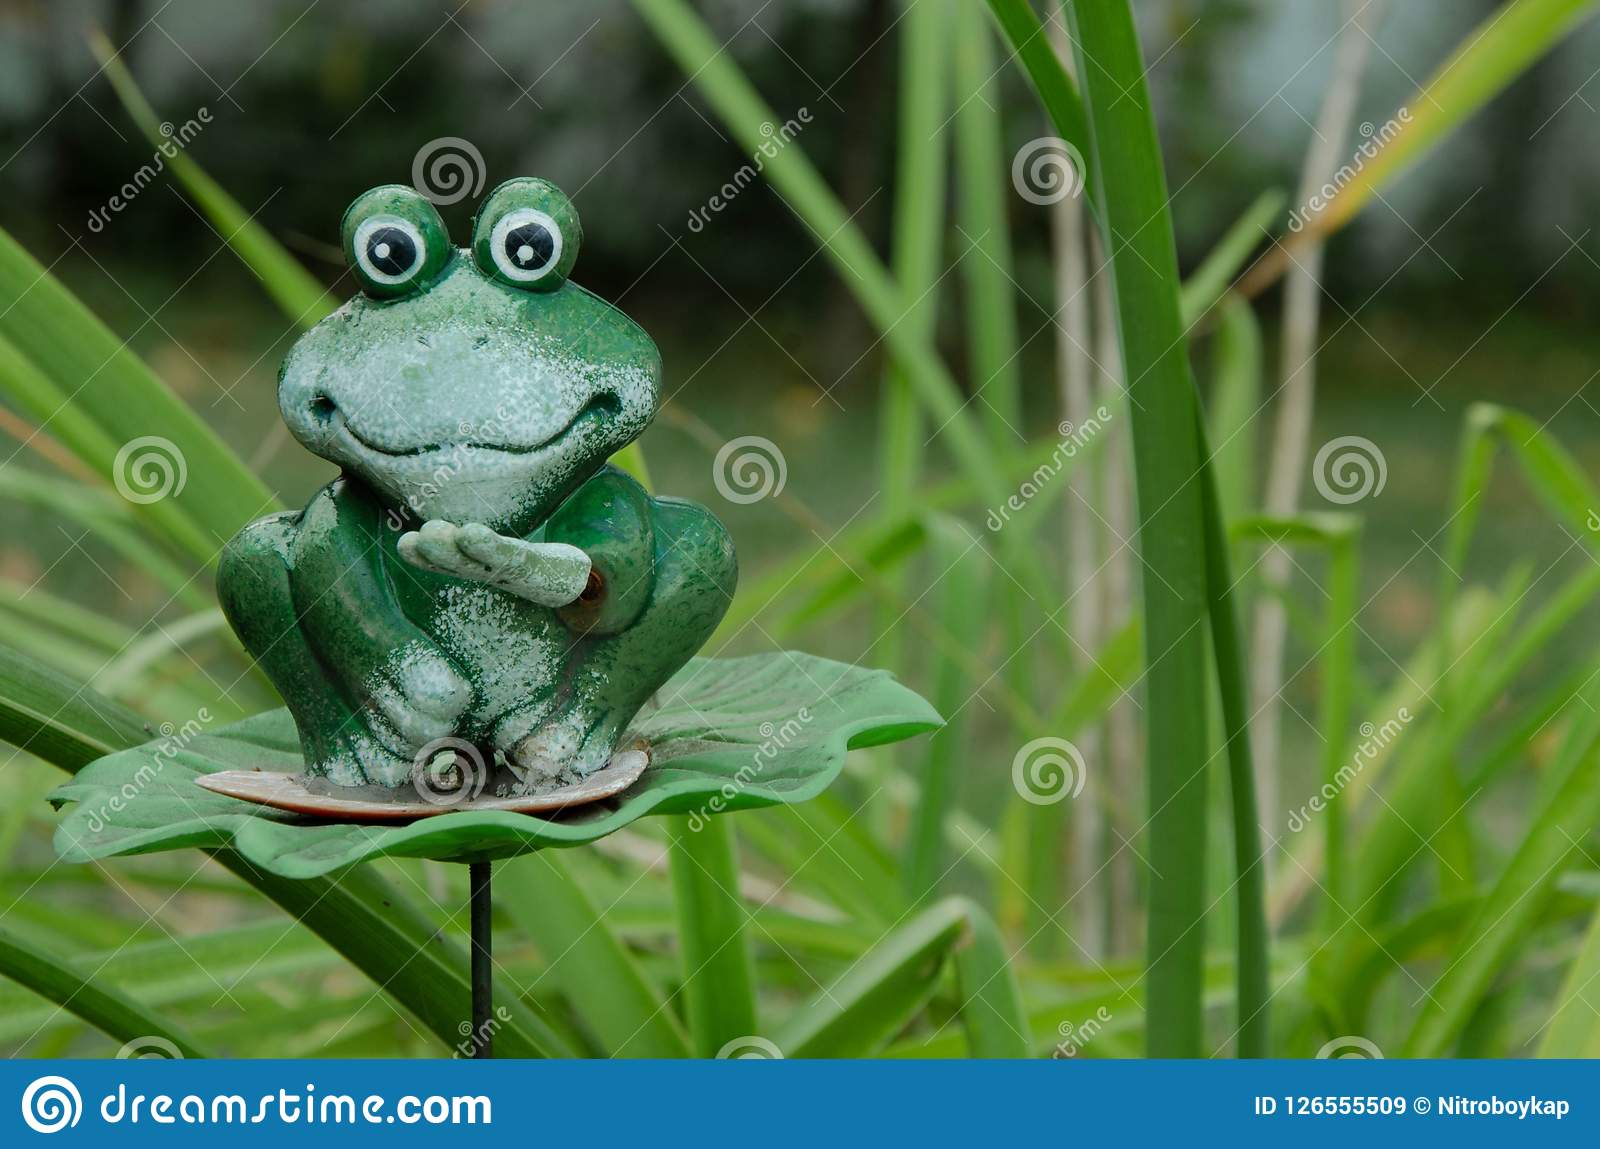 Green toy frog on grass background